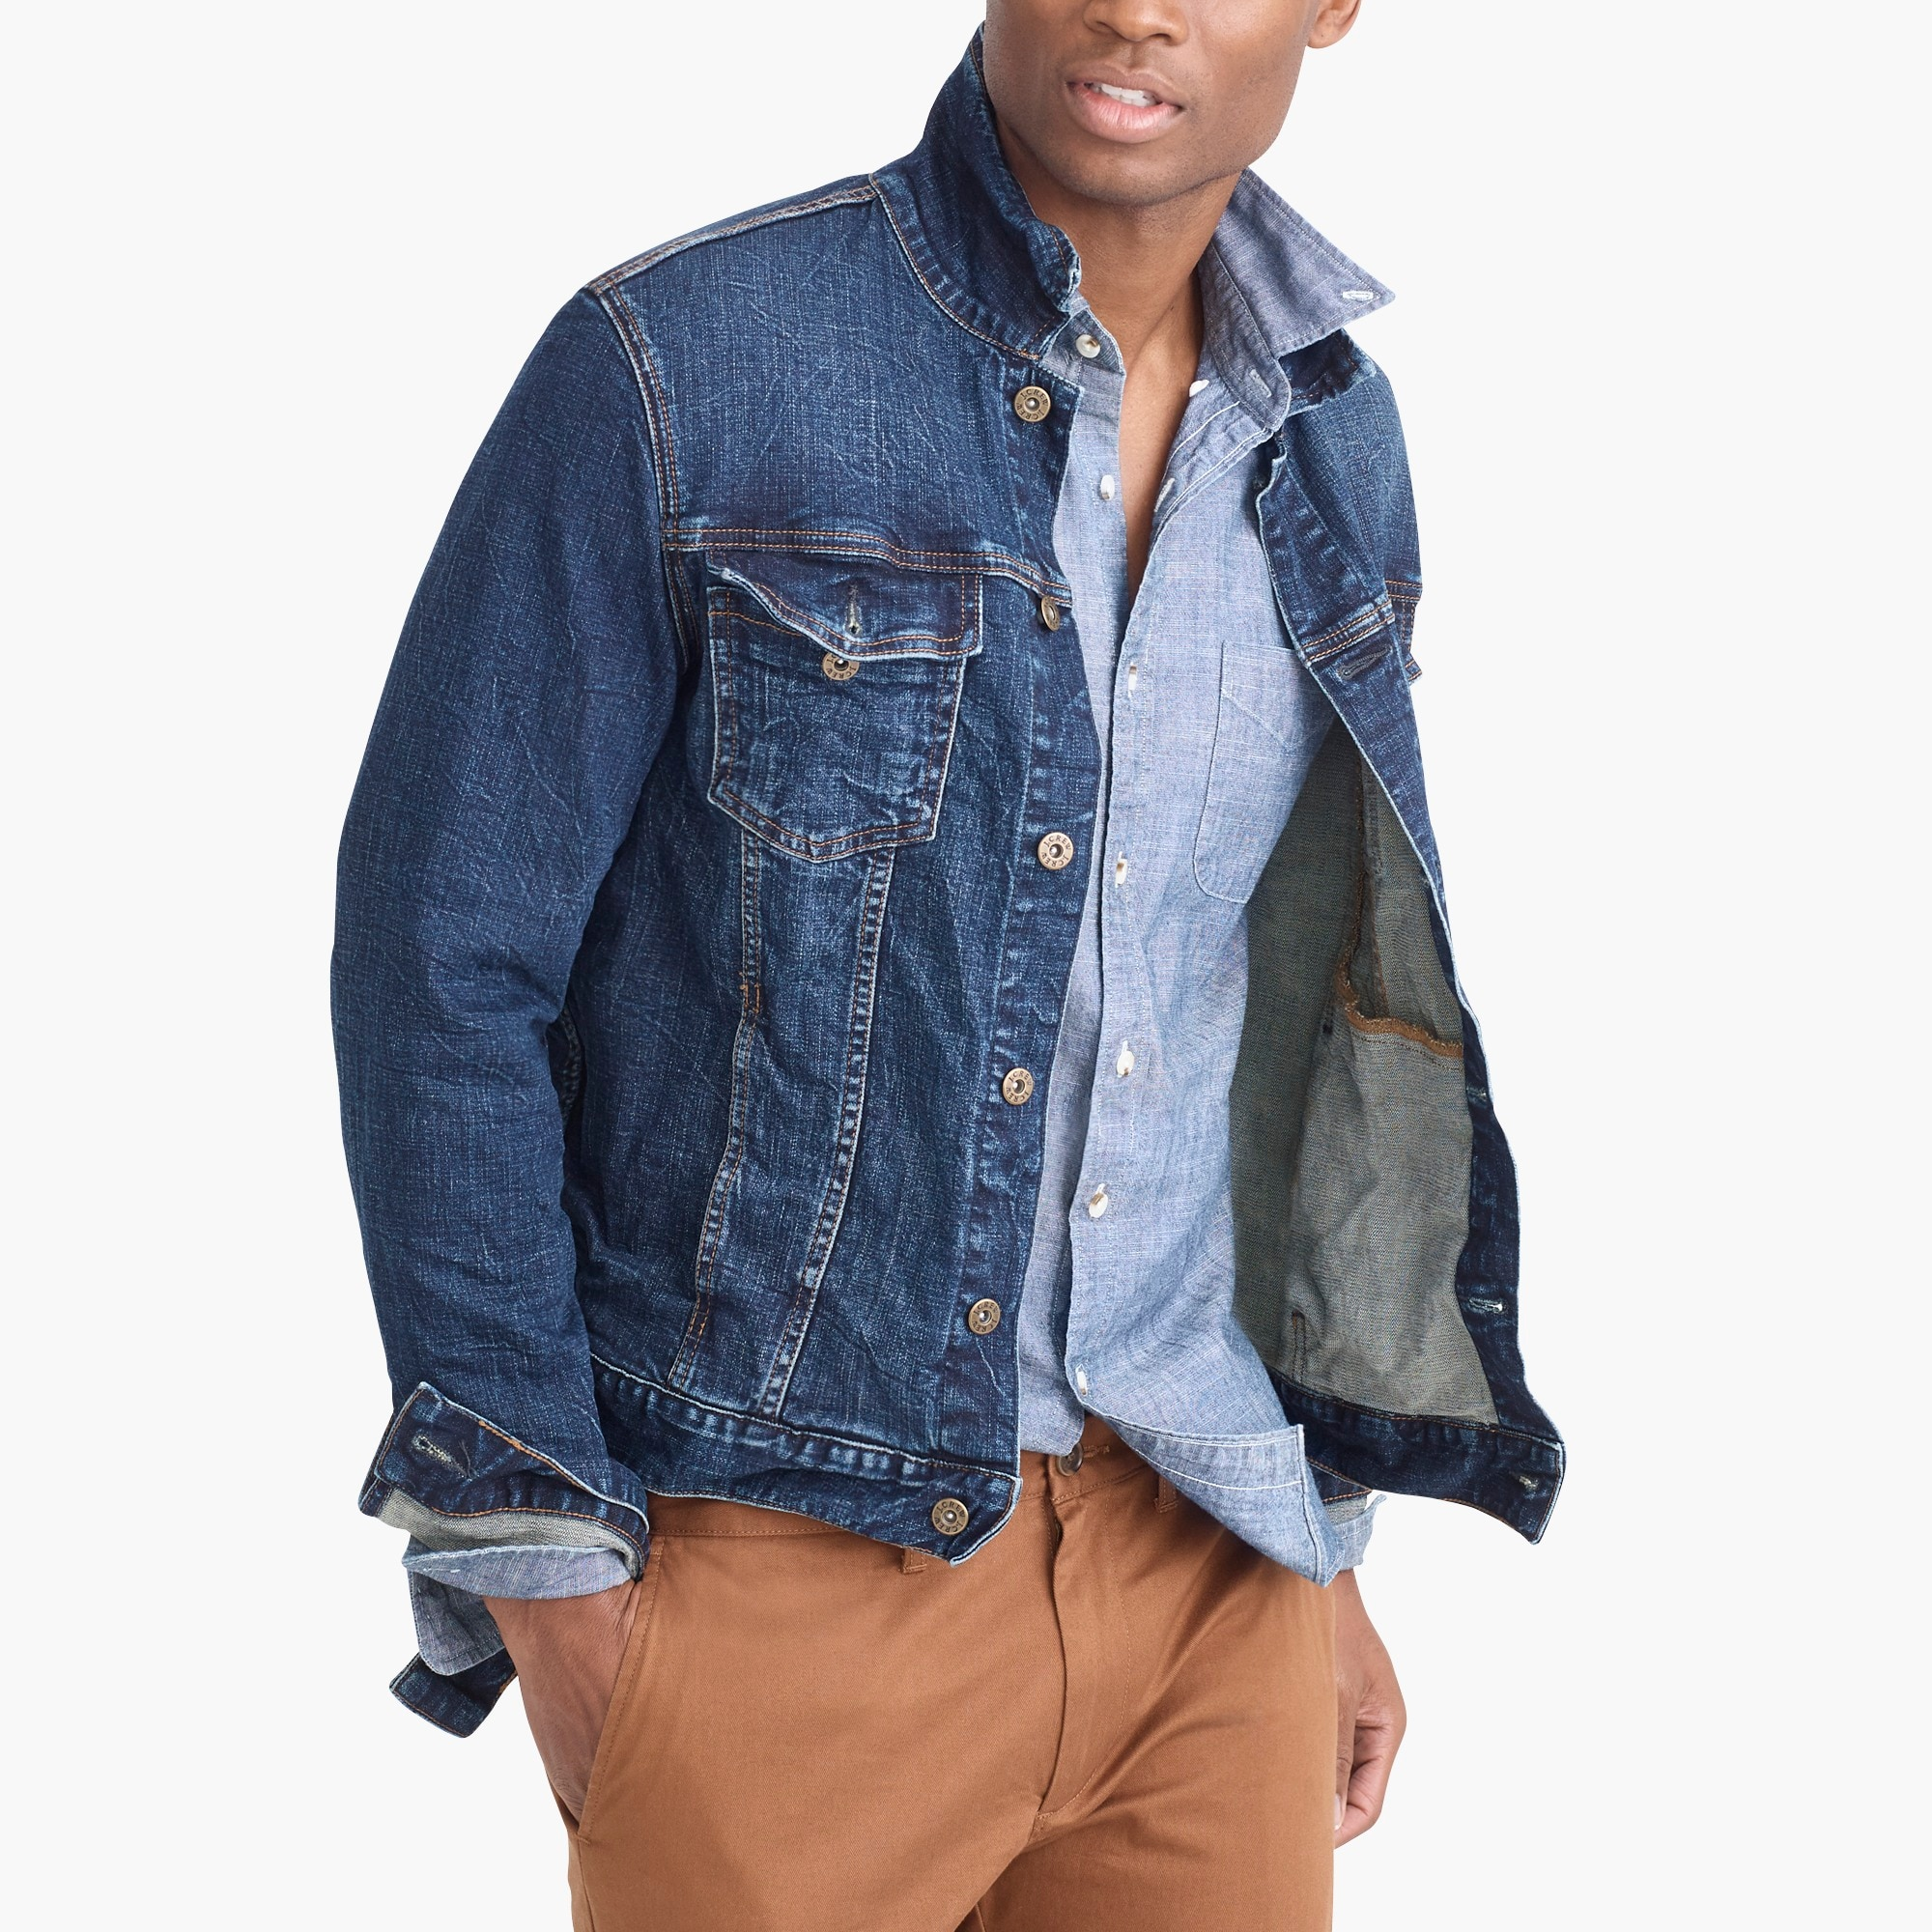 factory mens Flex denim jacket